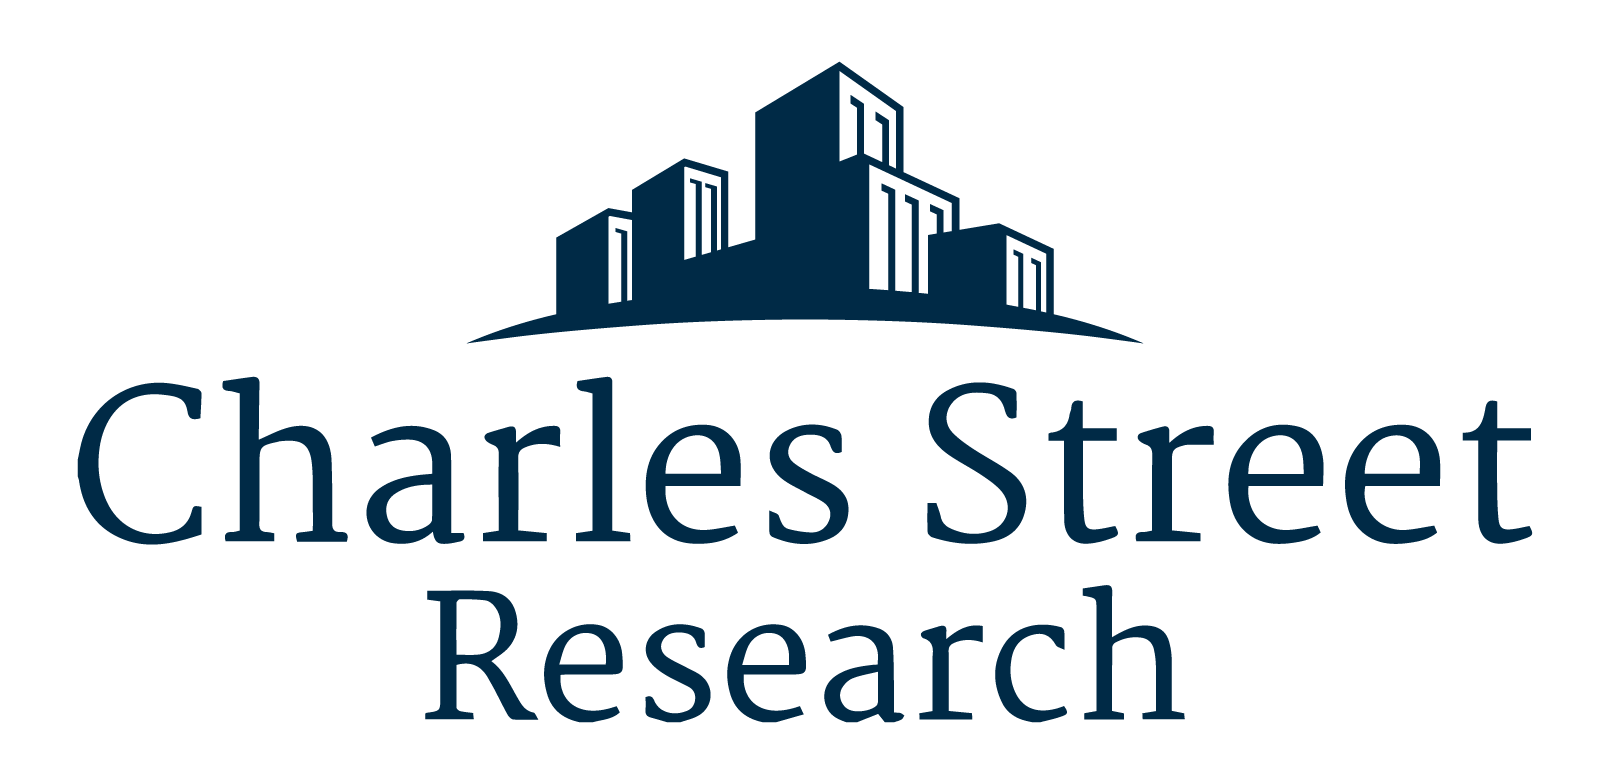 Charles Street Research